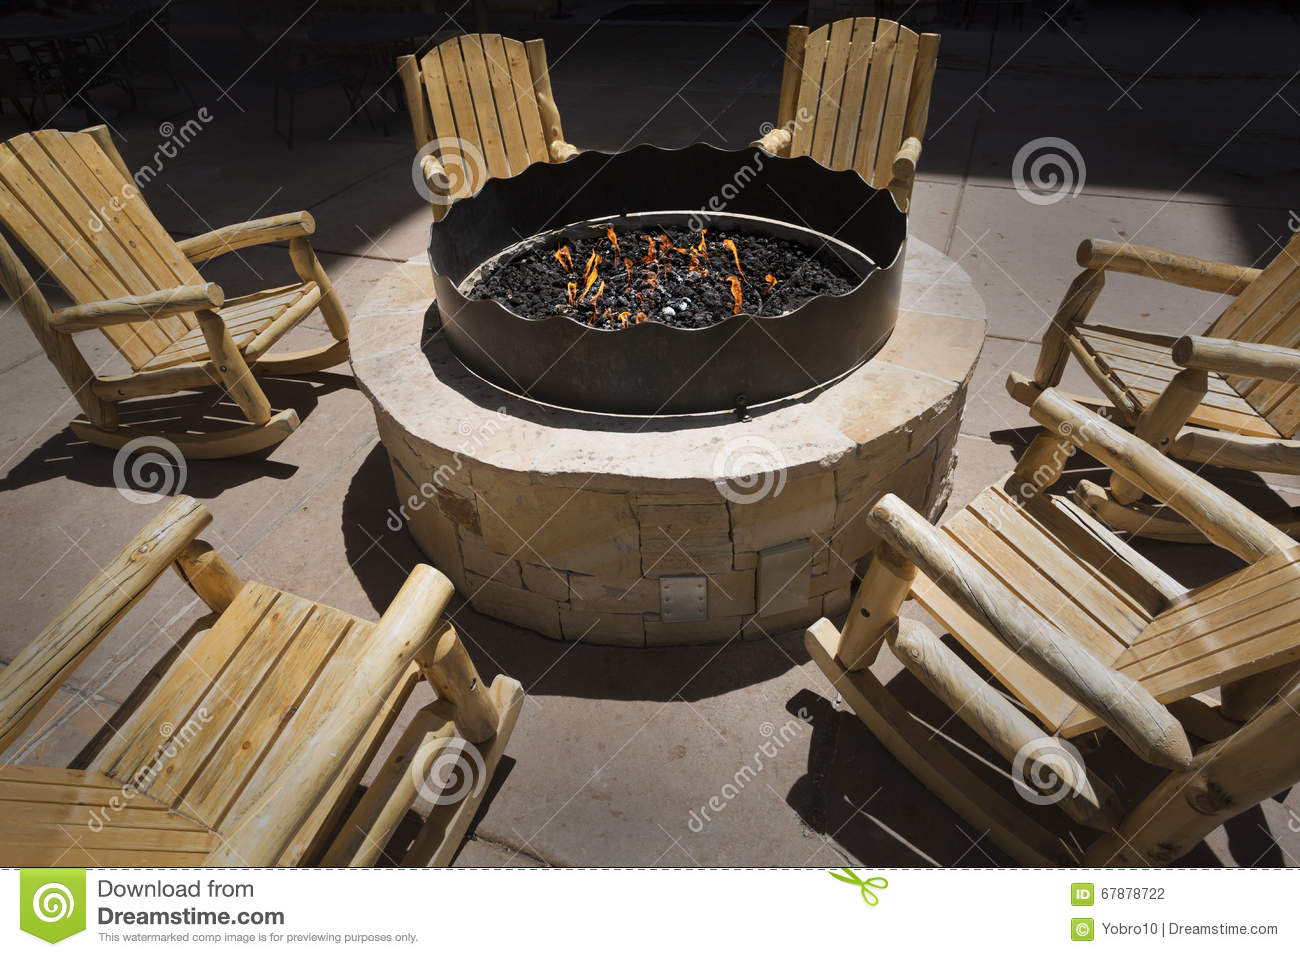 Admirable Large Outdoor Fire Pit Surrounded By Wooden Rocking Chairs Bralicious Painted Fabric Chair Ideas Braliciousco